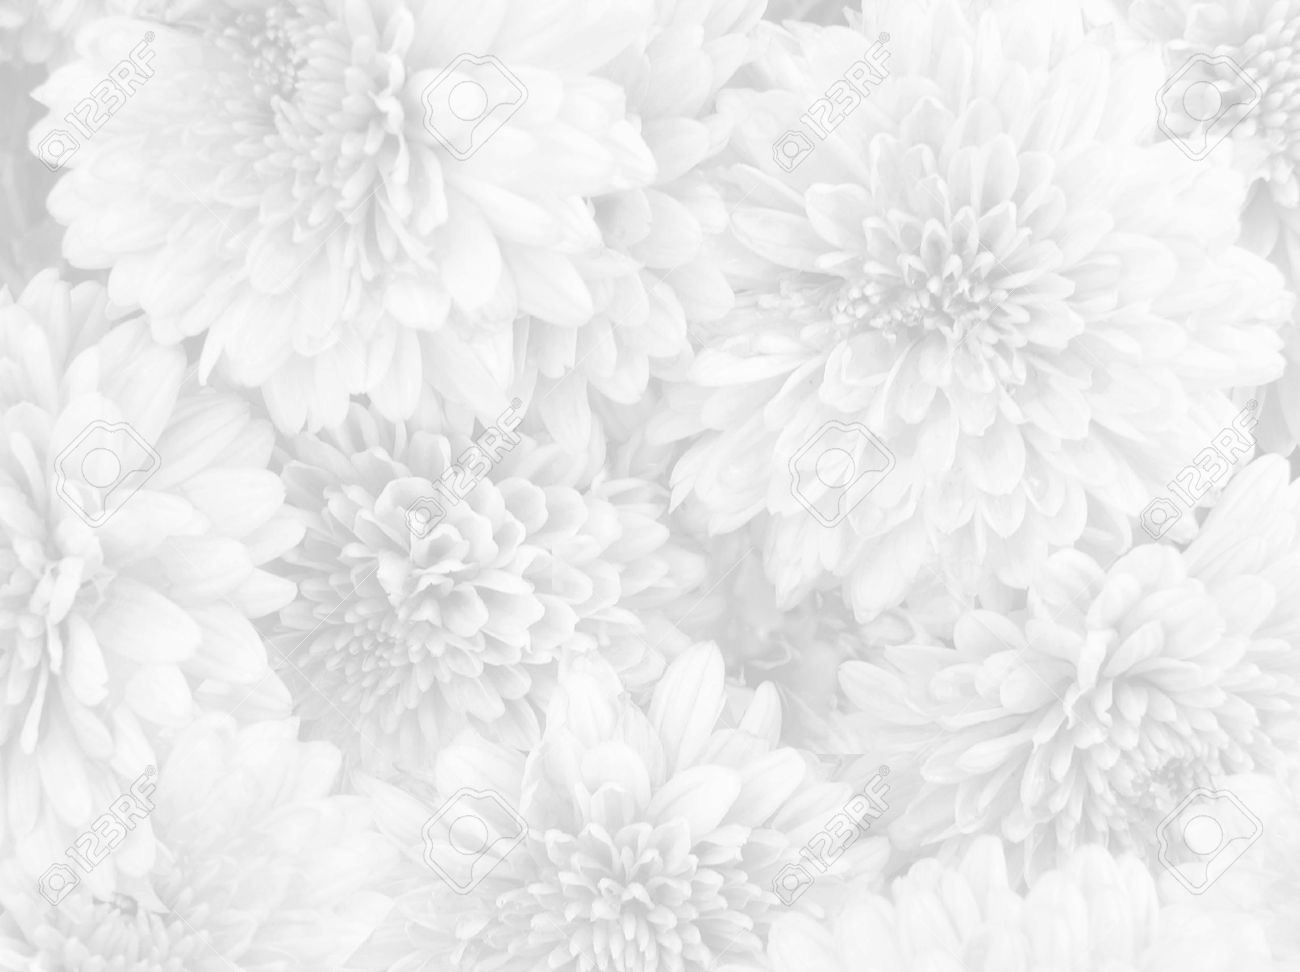 White flowers background stock photo picture and royalty free image white flowers background mightylinksfo Images